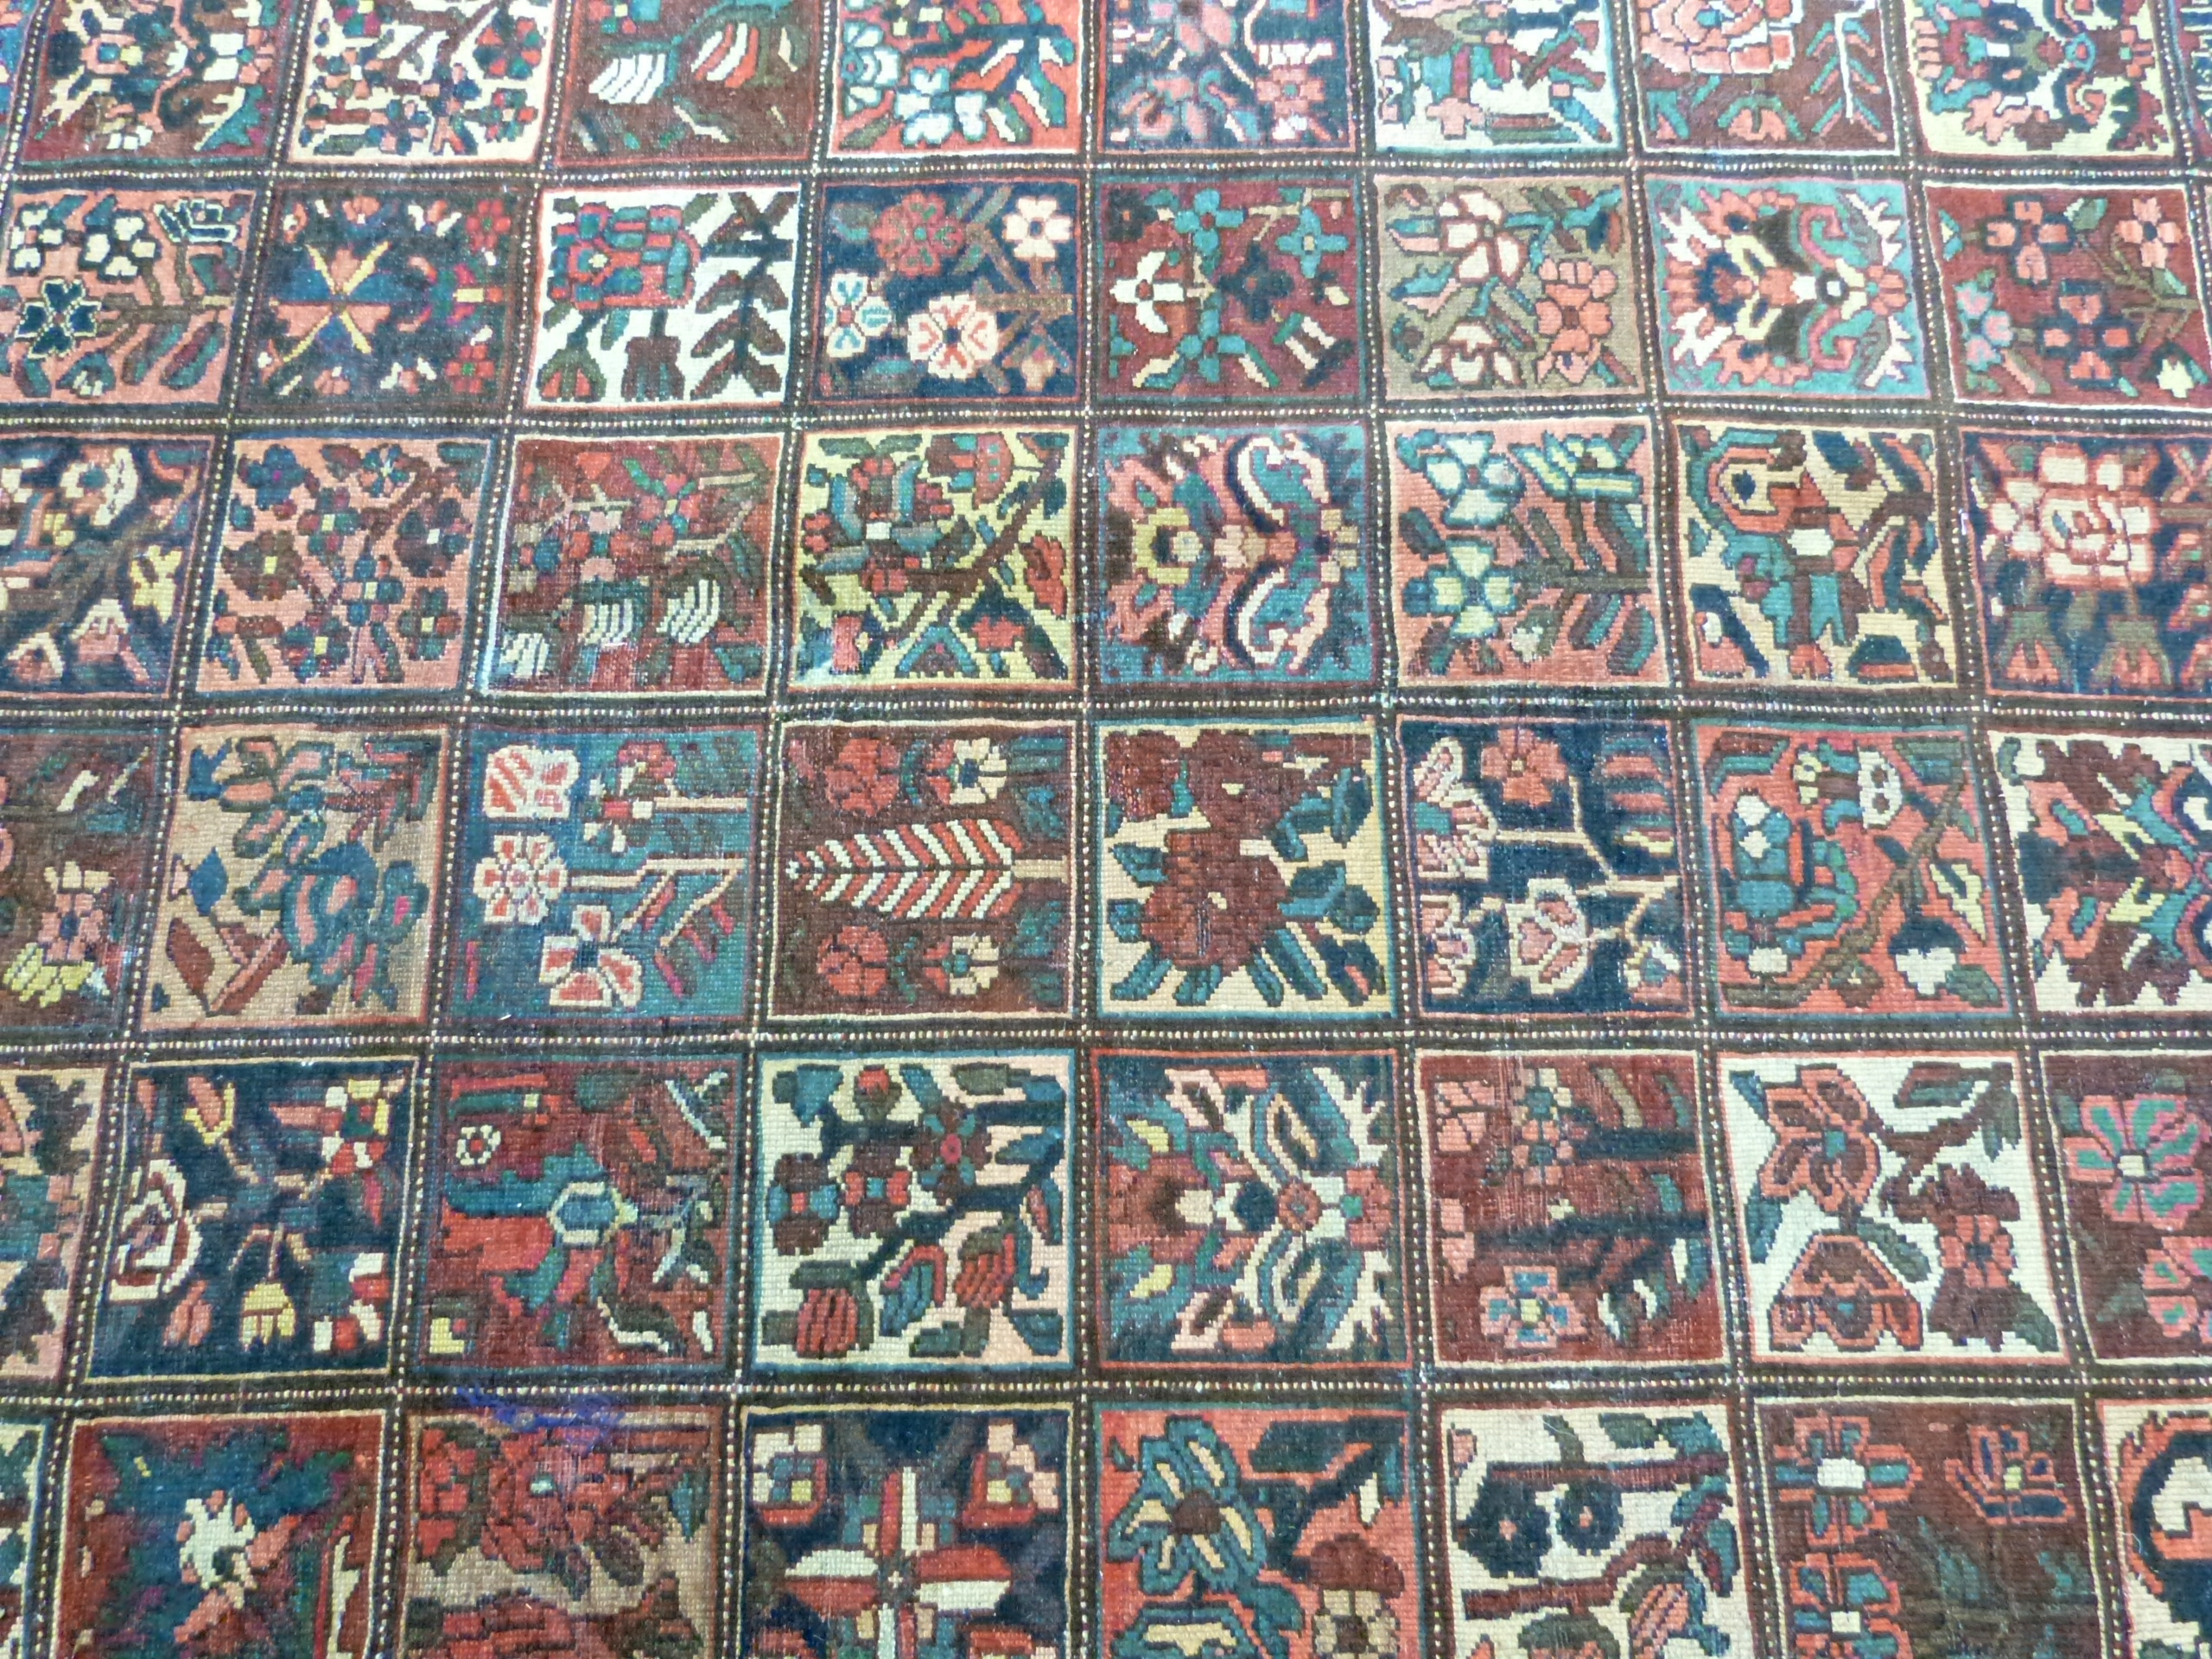 Vintage Persian Baktia Carpet, with all-over panelled design 260cm x 167cm approximately - Image 3 of 7